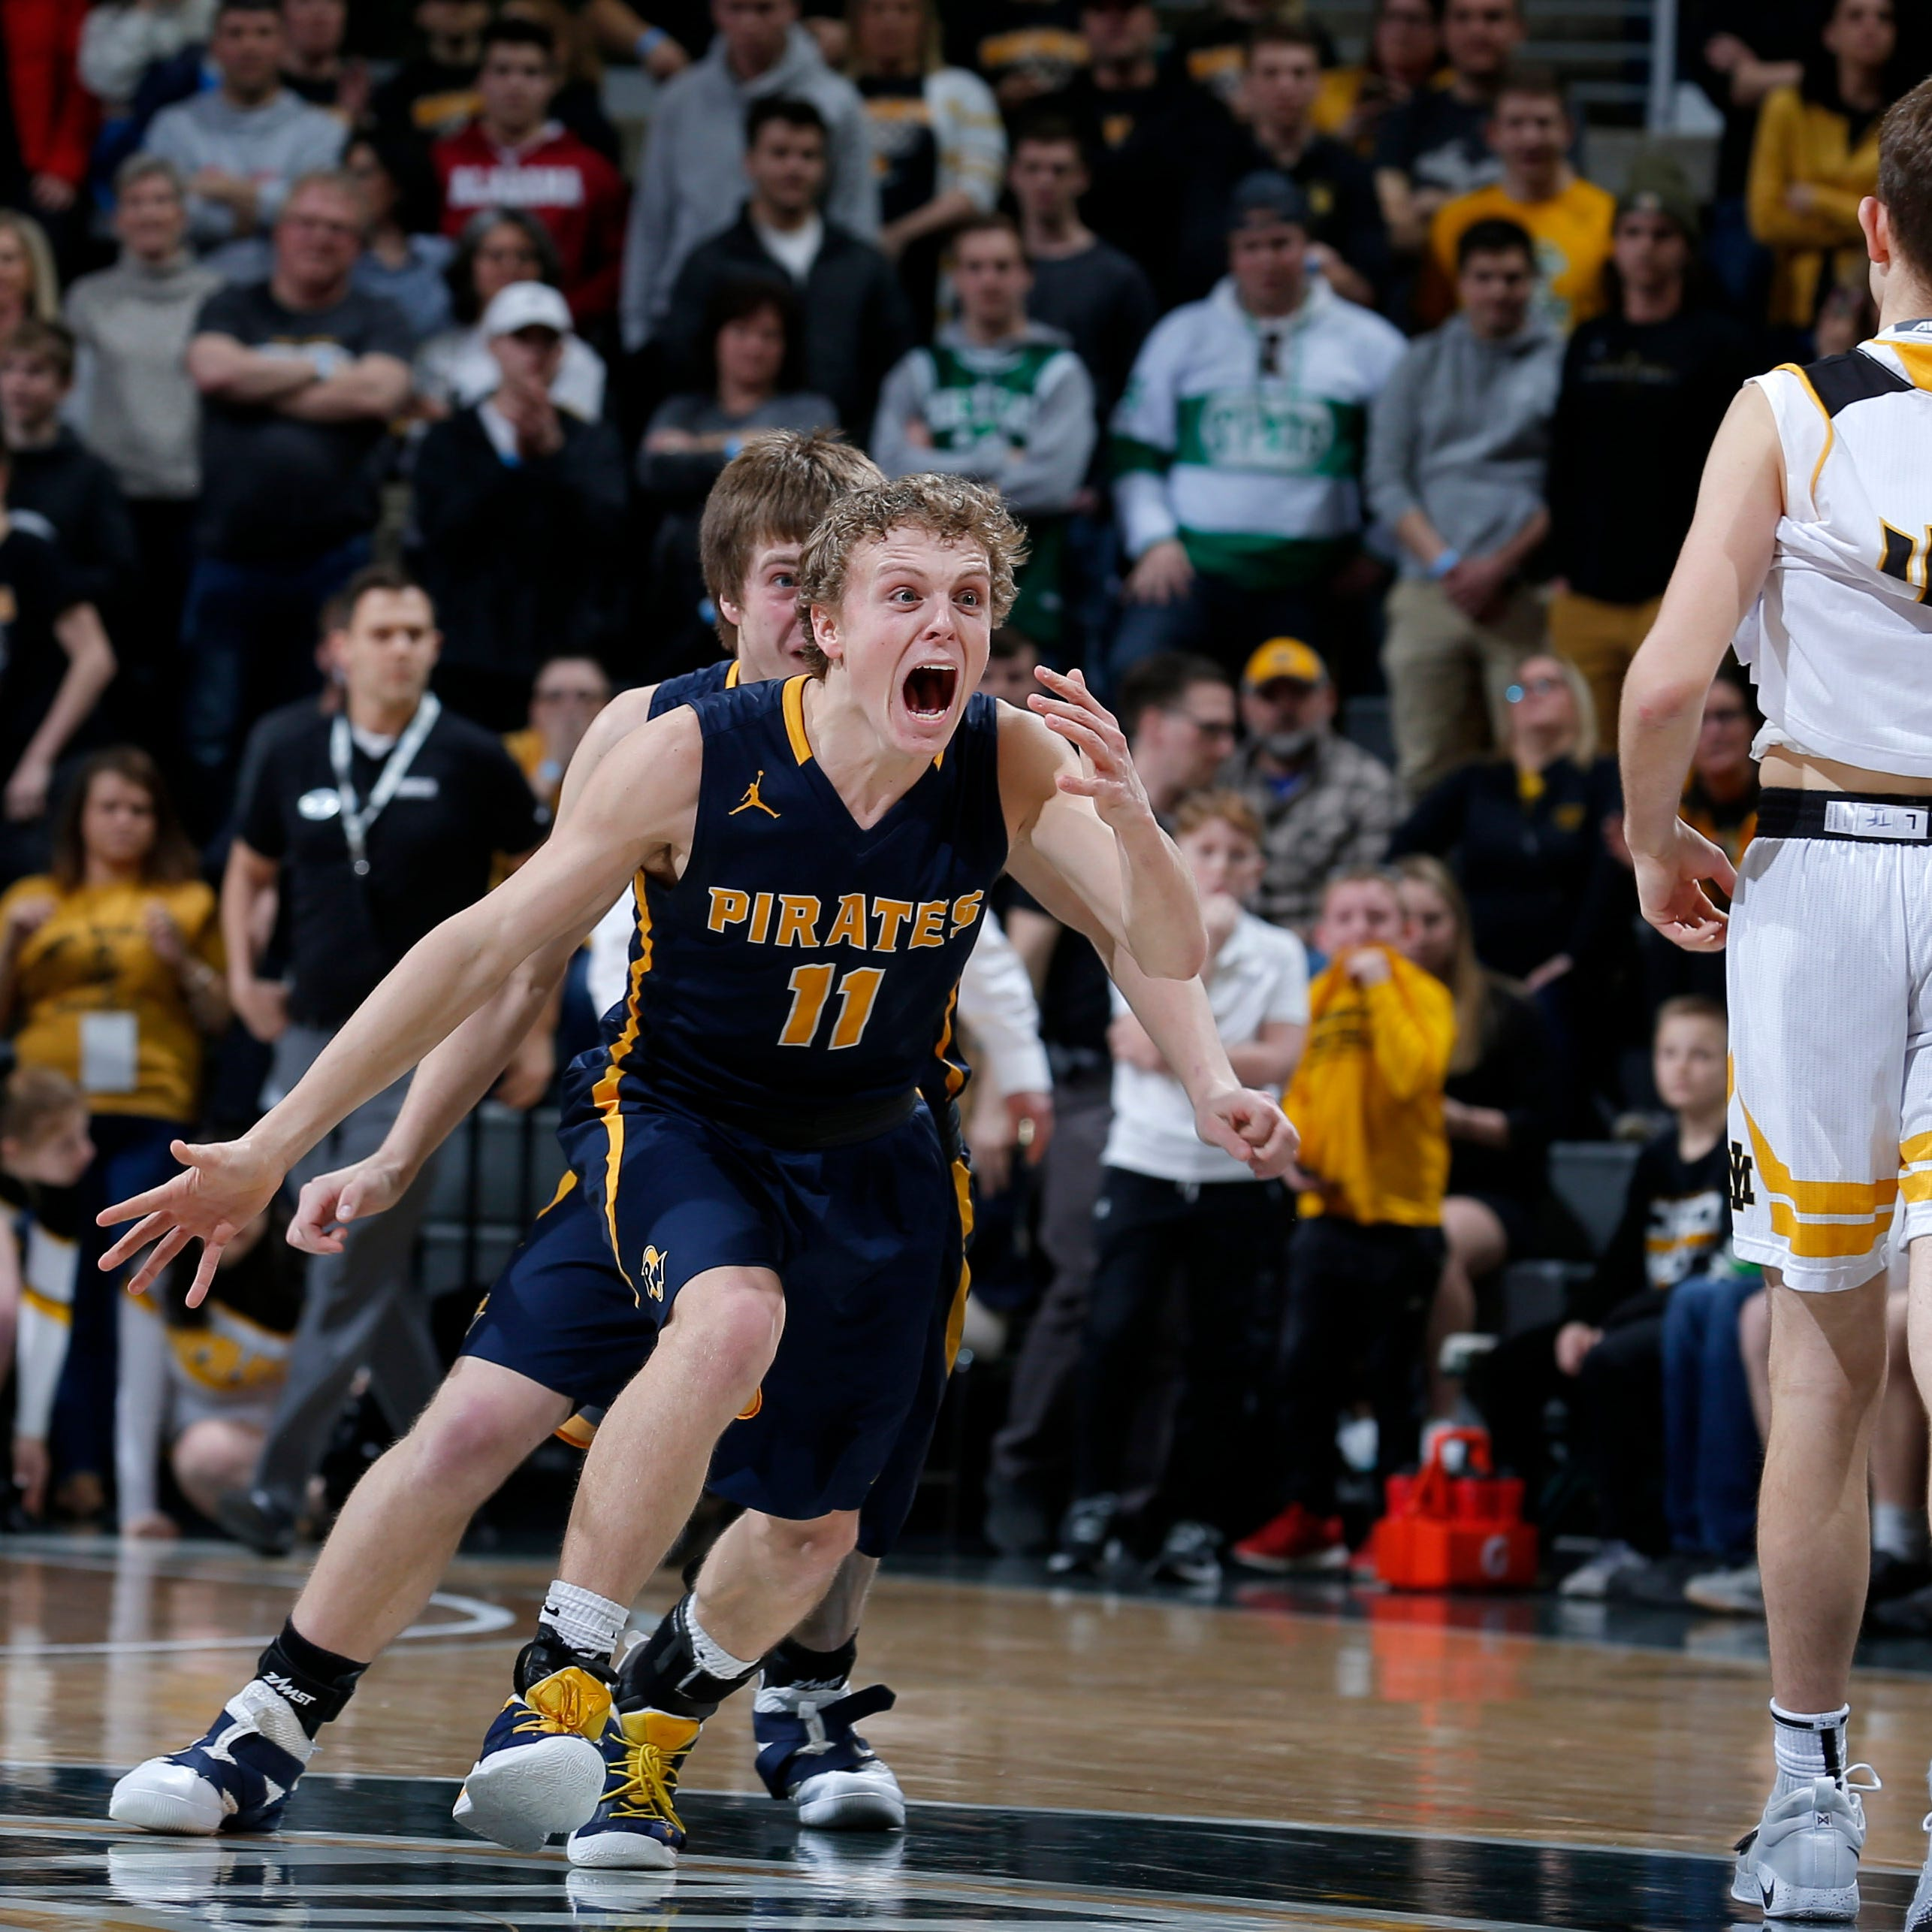 Pewamo-Westphalia's Collin Trierweiler (11) and Nathan Wirth, rear, celebrate as time expires in their MHSAA championship win over Iron Mountain, Saturday, March 16, 2019, in East Lansing, Mich. P-W won 53-52.